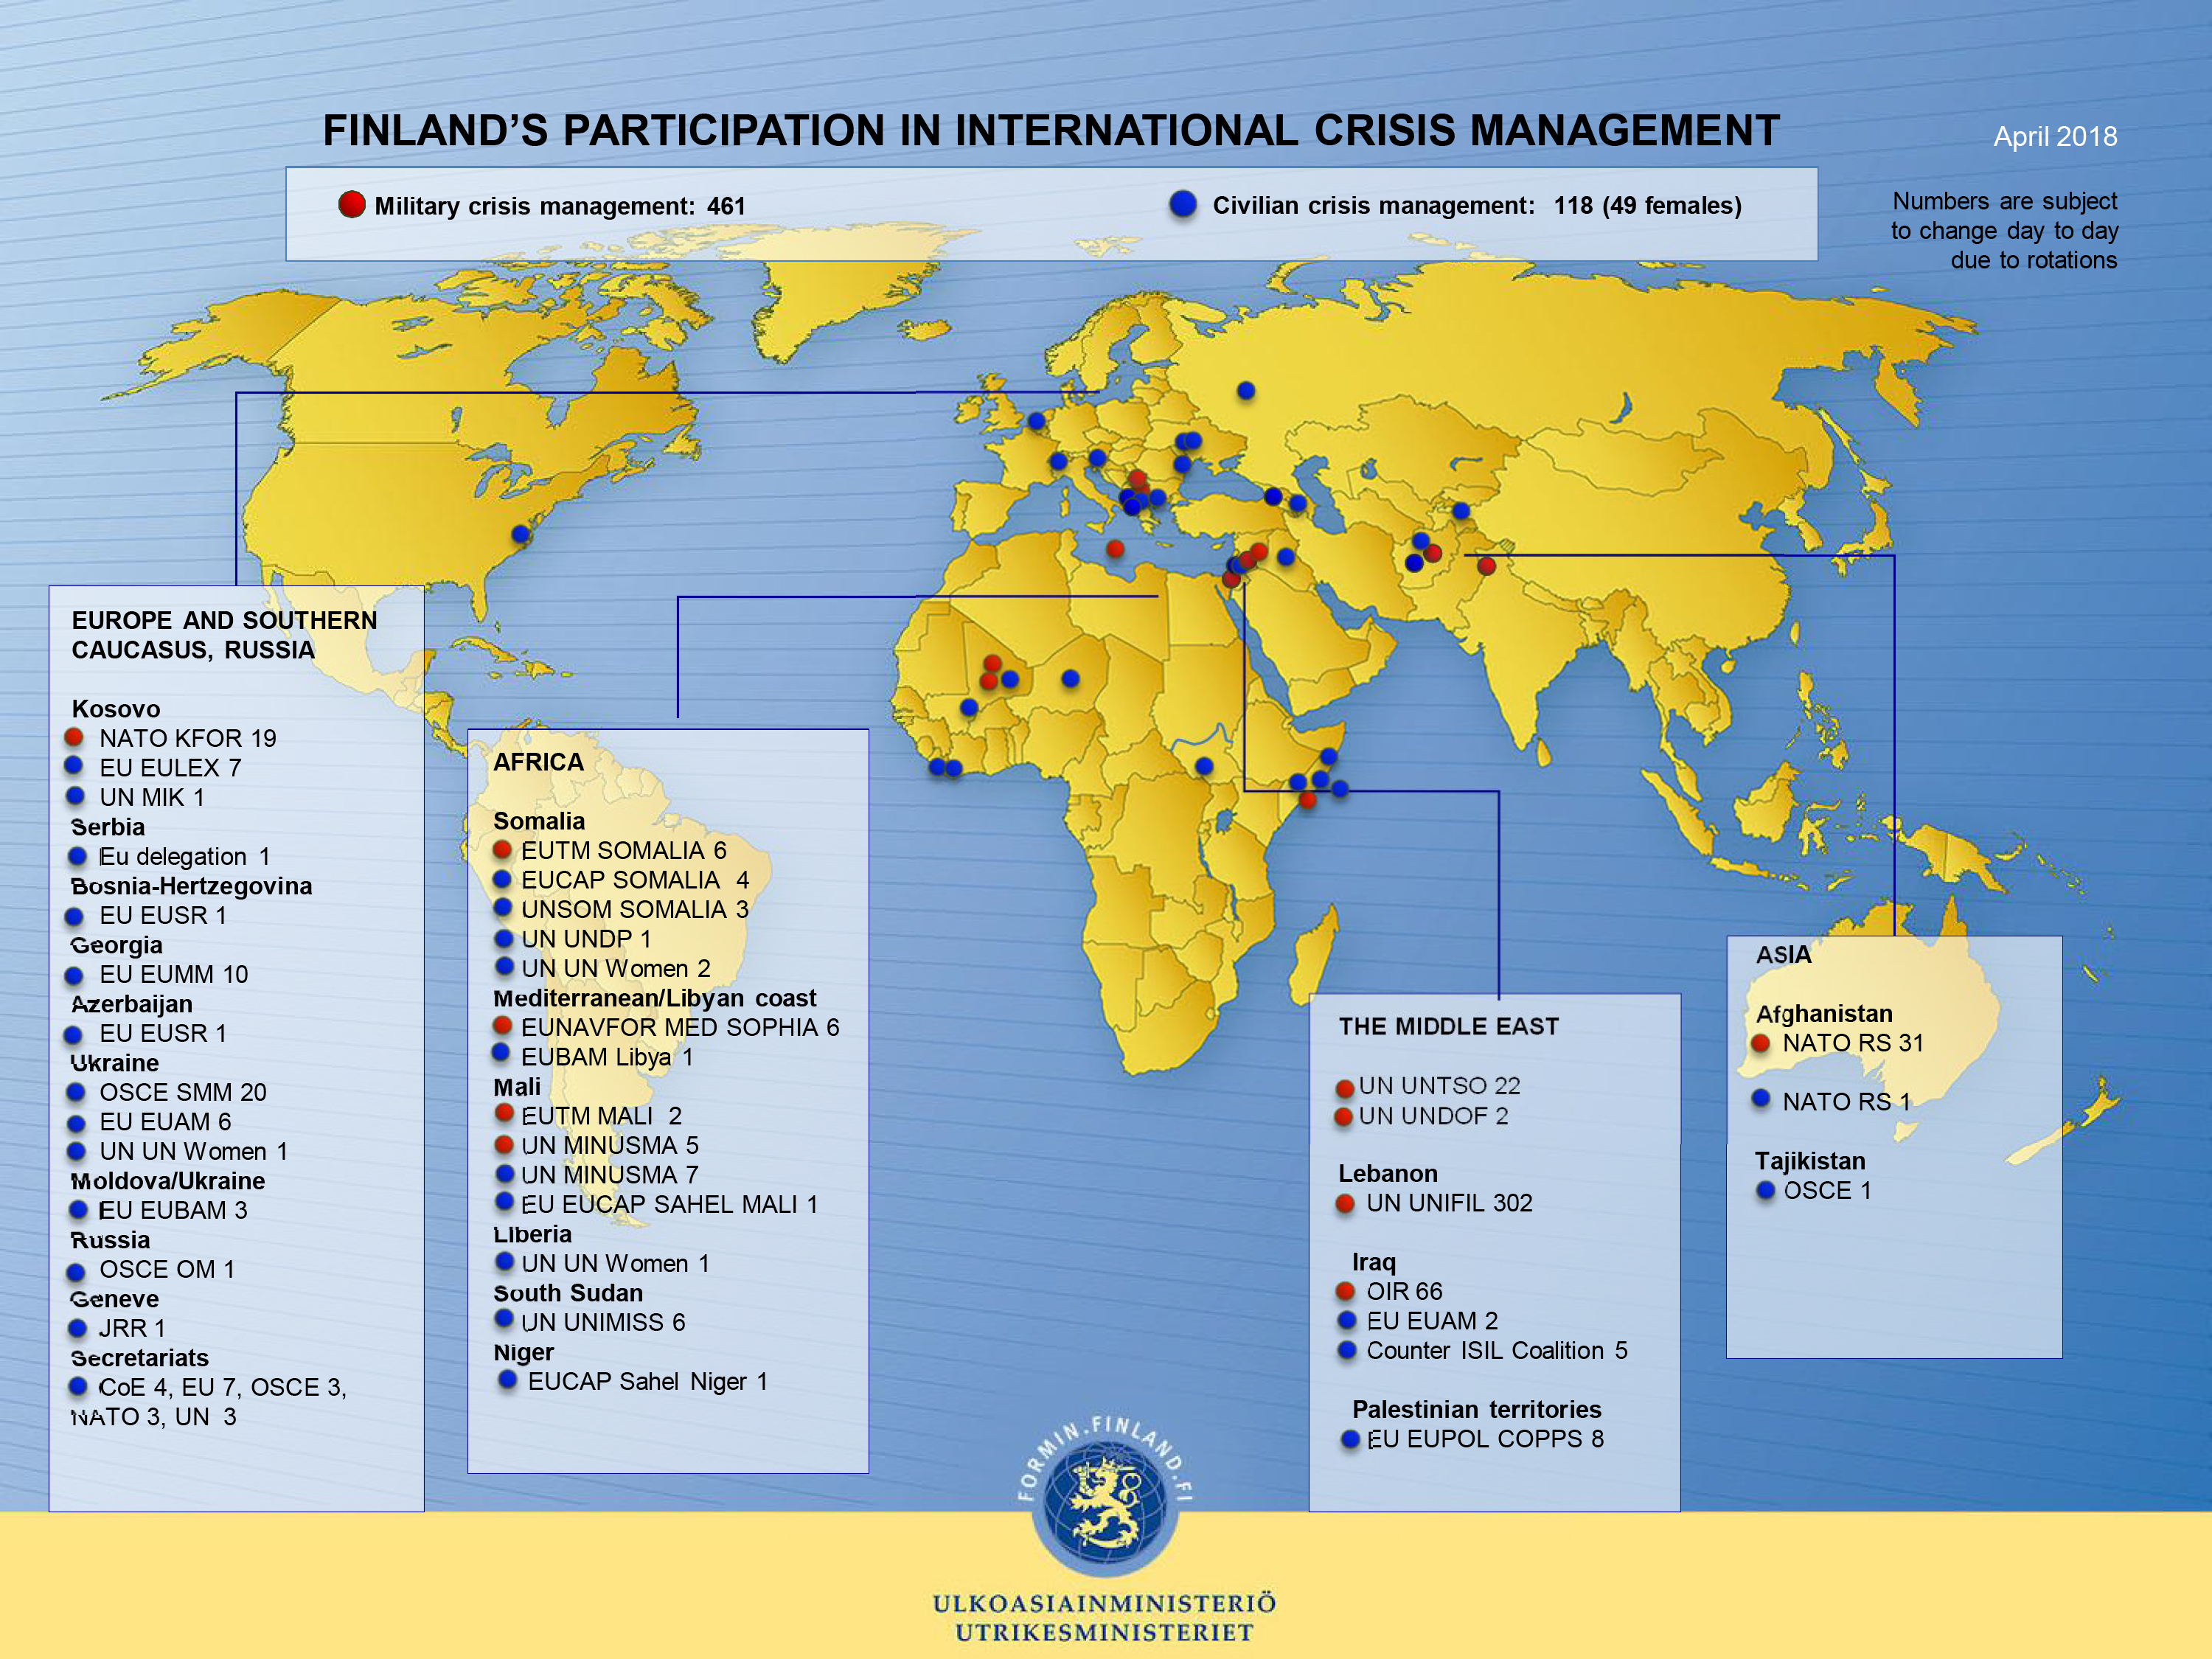 Finland's participation in international crisis management, April 2018